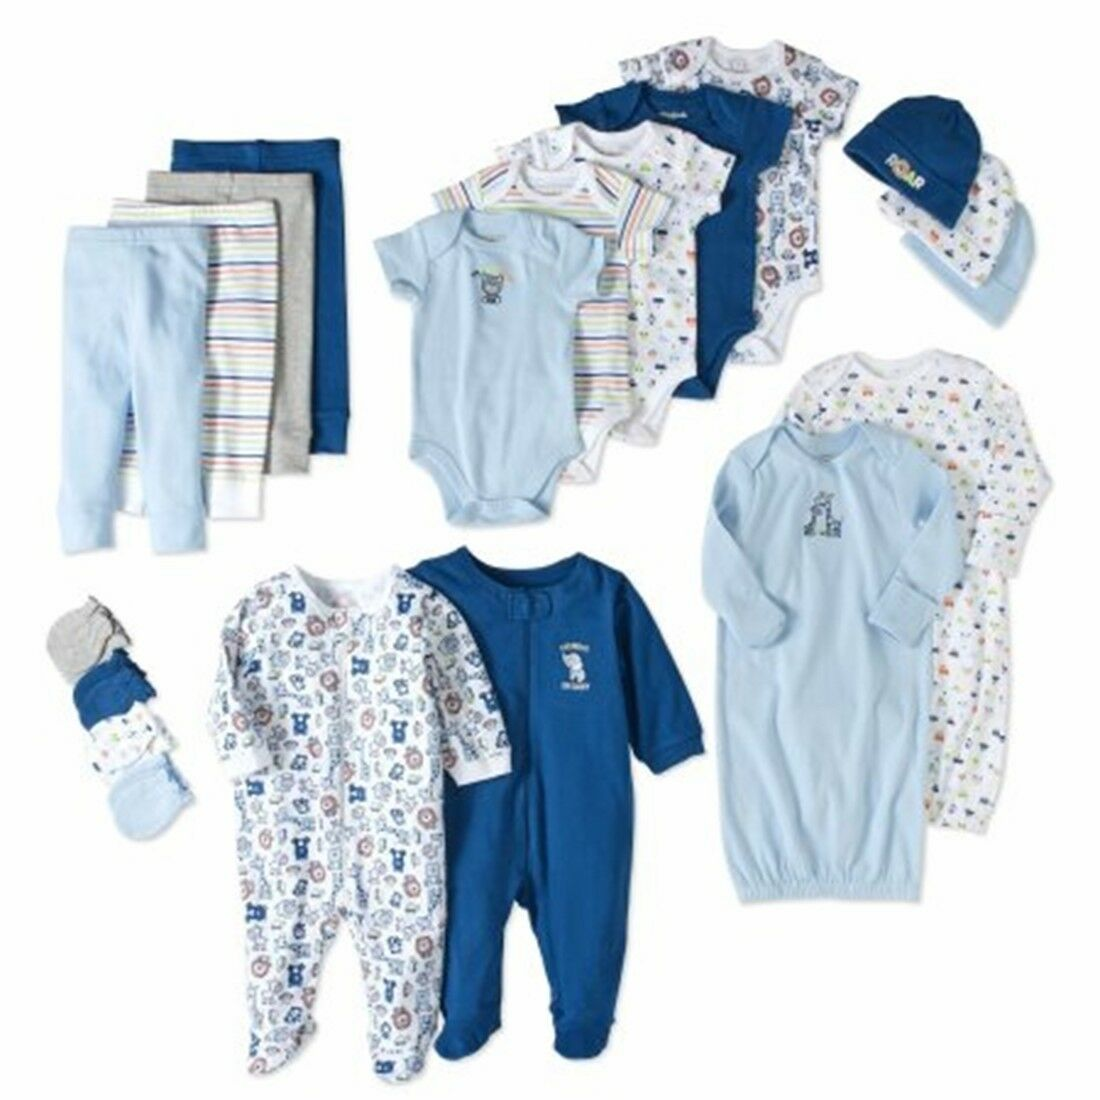 Newborn Baby Boy Clothes 0-3 months 20 Piece Set Garanimals